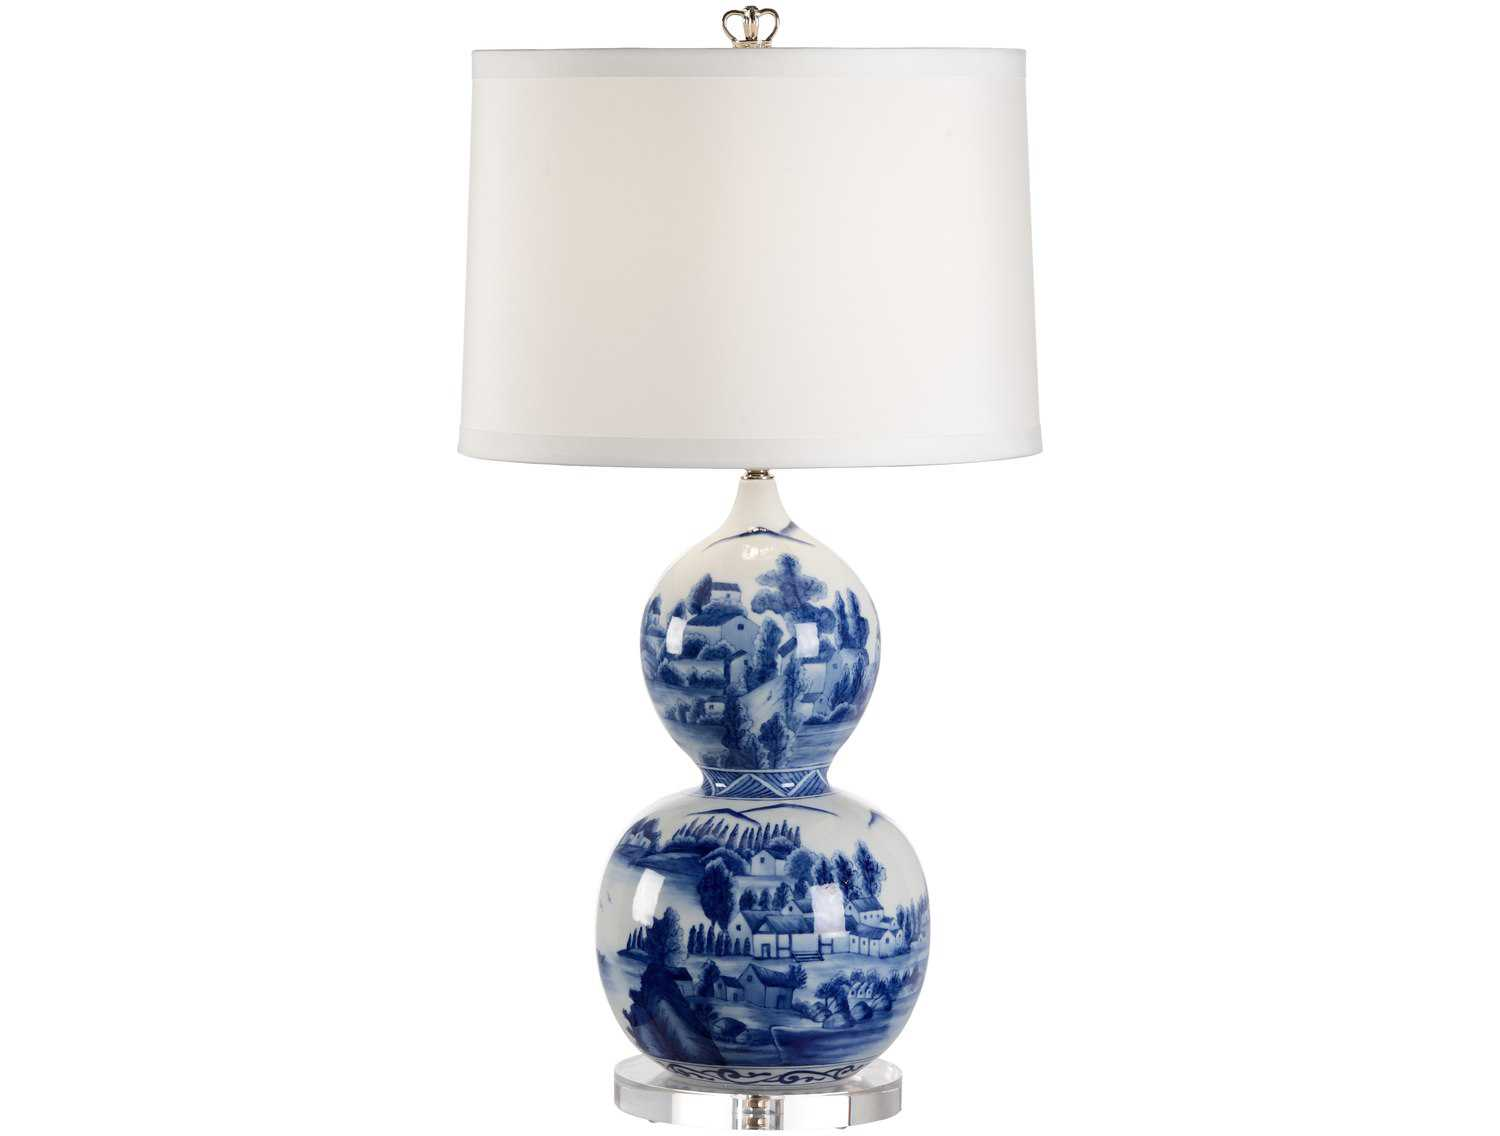 Chelsea House Scenic Blue Vase Table Lamp Ch68695